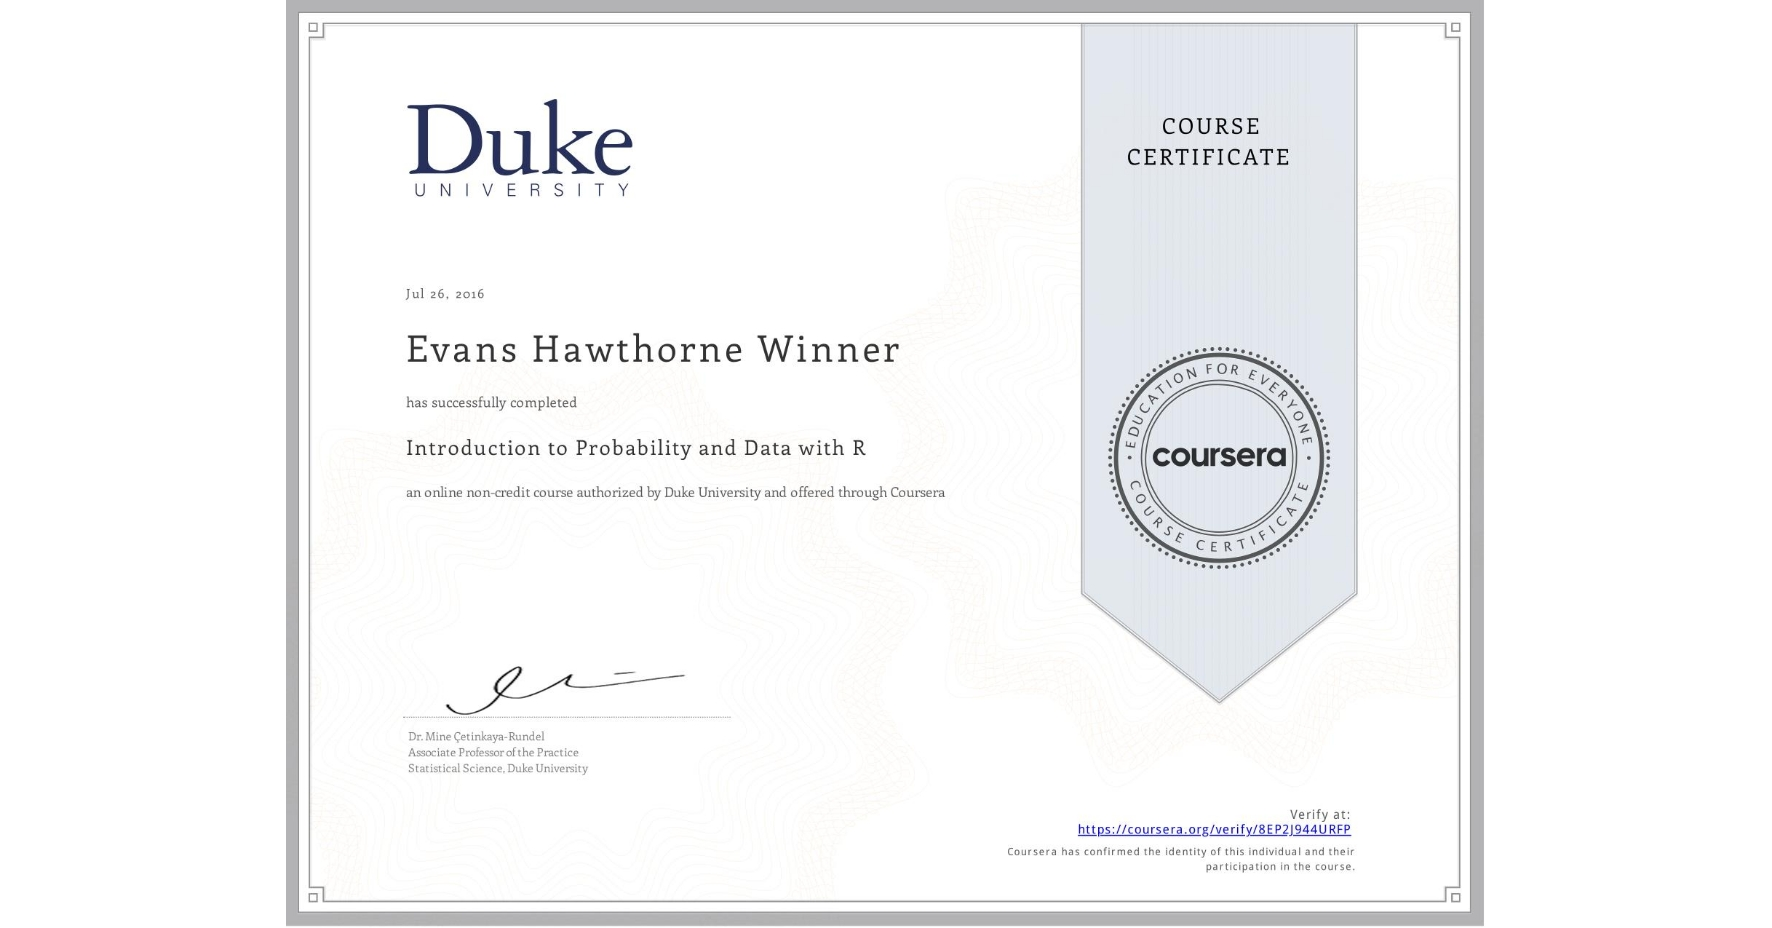 View certificate for Evans Hawthorne Winner, Introduction to Probability and Data with R, an online non-credit course authorized by Duke University and offered through Coursera